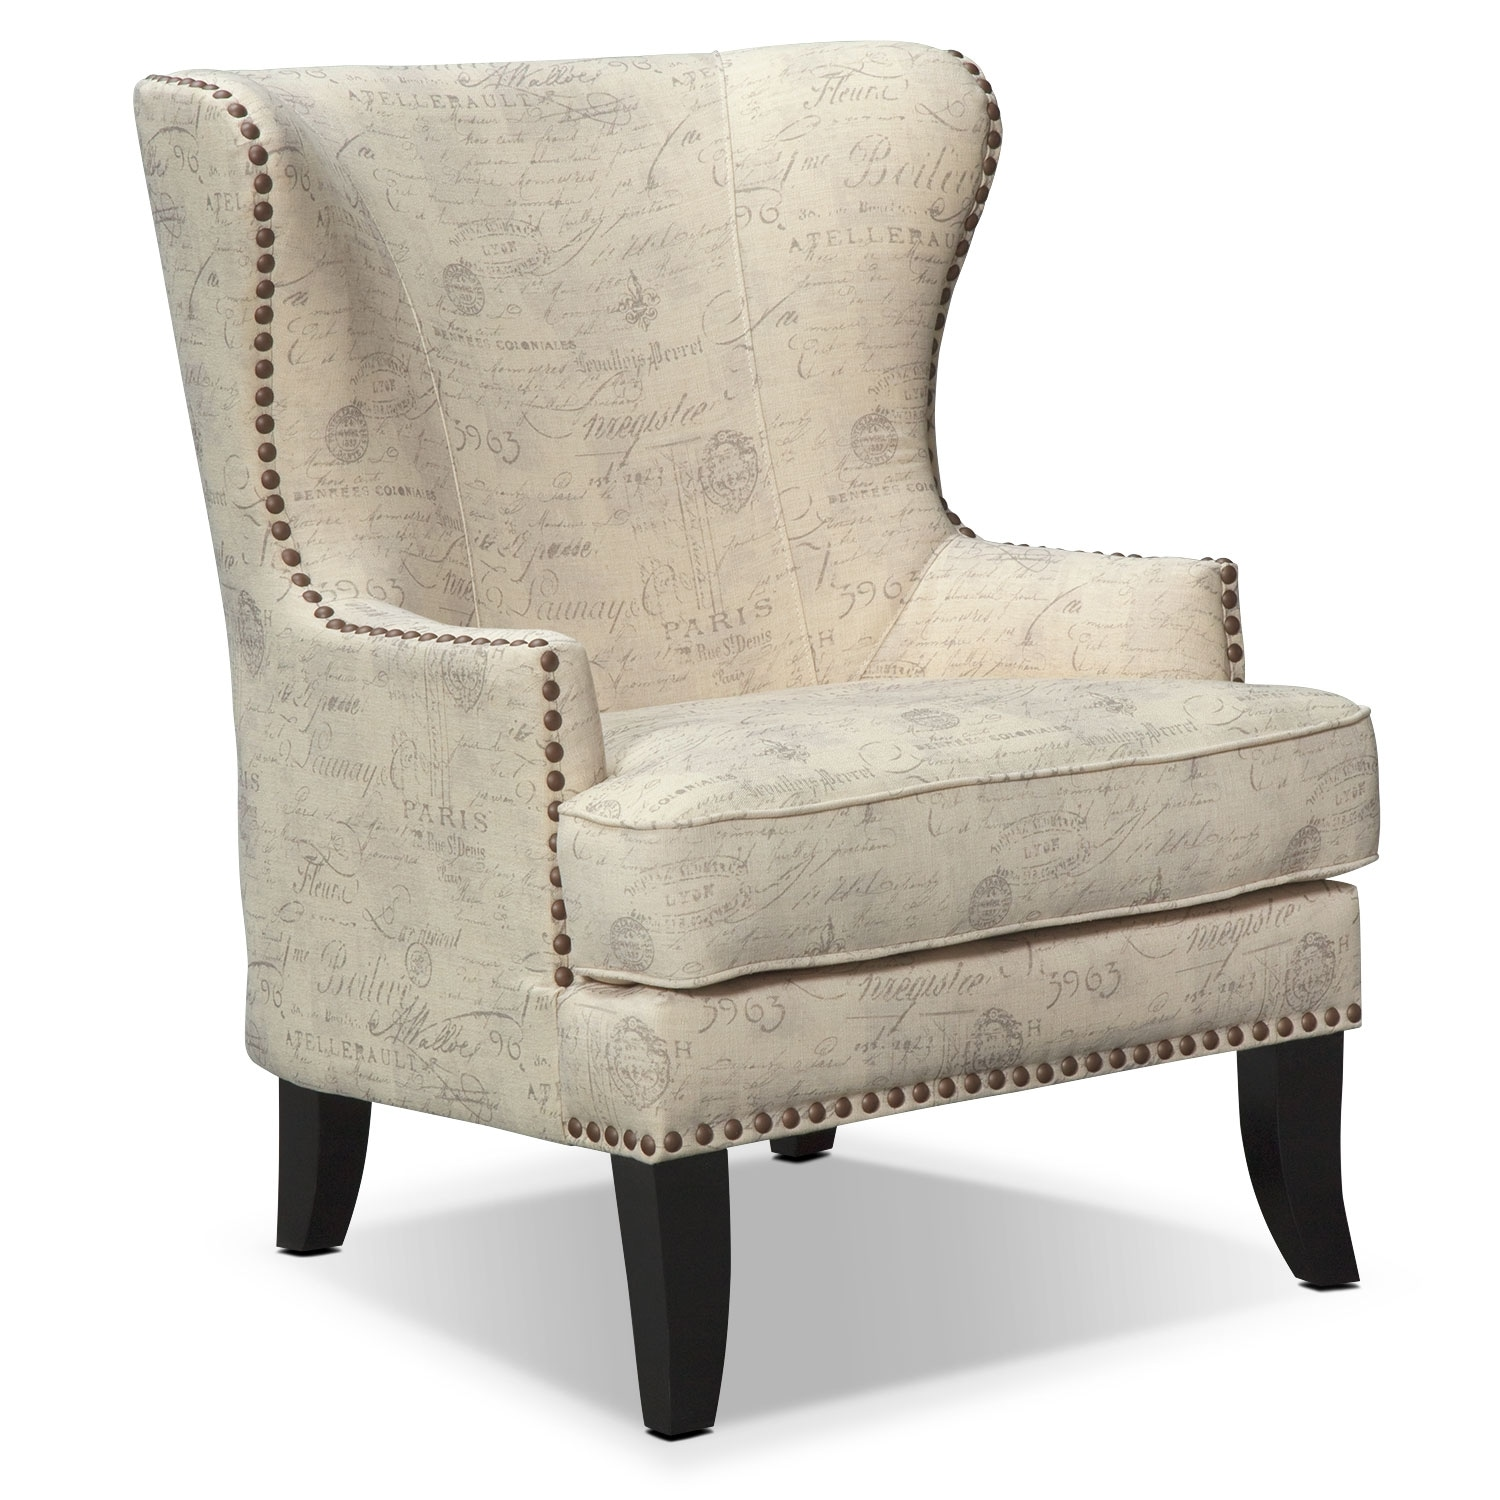 Marseille accent chair cream and black american for Living room accent chairs